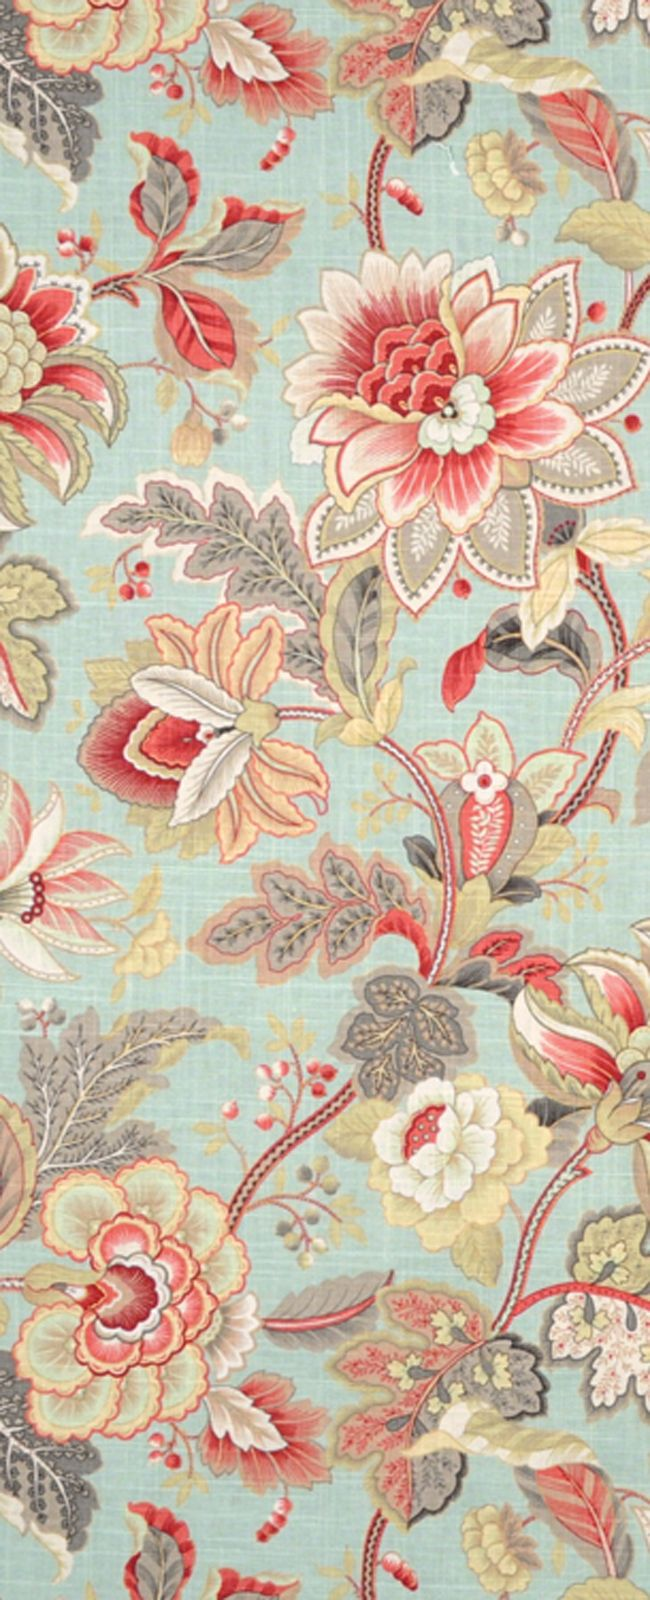 Blue, gray and pink room inspiration- Swavelle / Mill Creek Venezia Dew Fabric $22.35 per yard